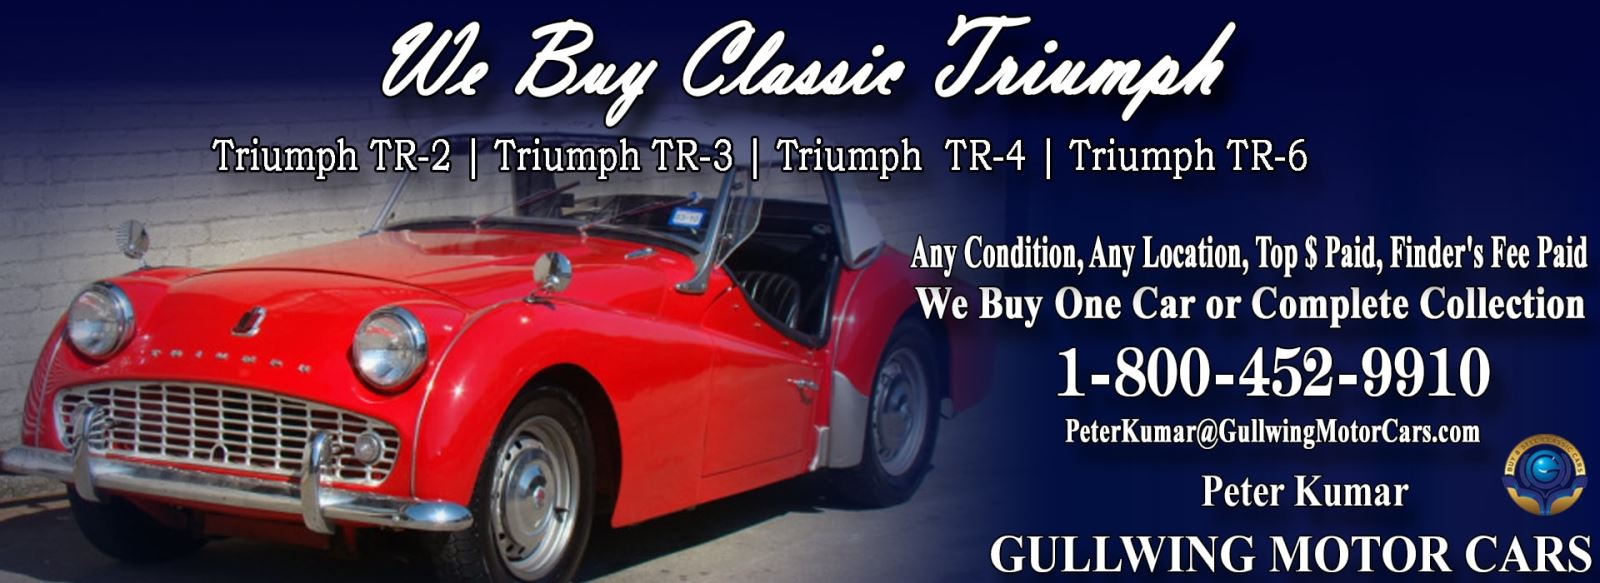 Classic Triumph for sale, we buy vintage Triumph. Call Peter Kumar. Gullwing Motor